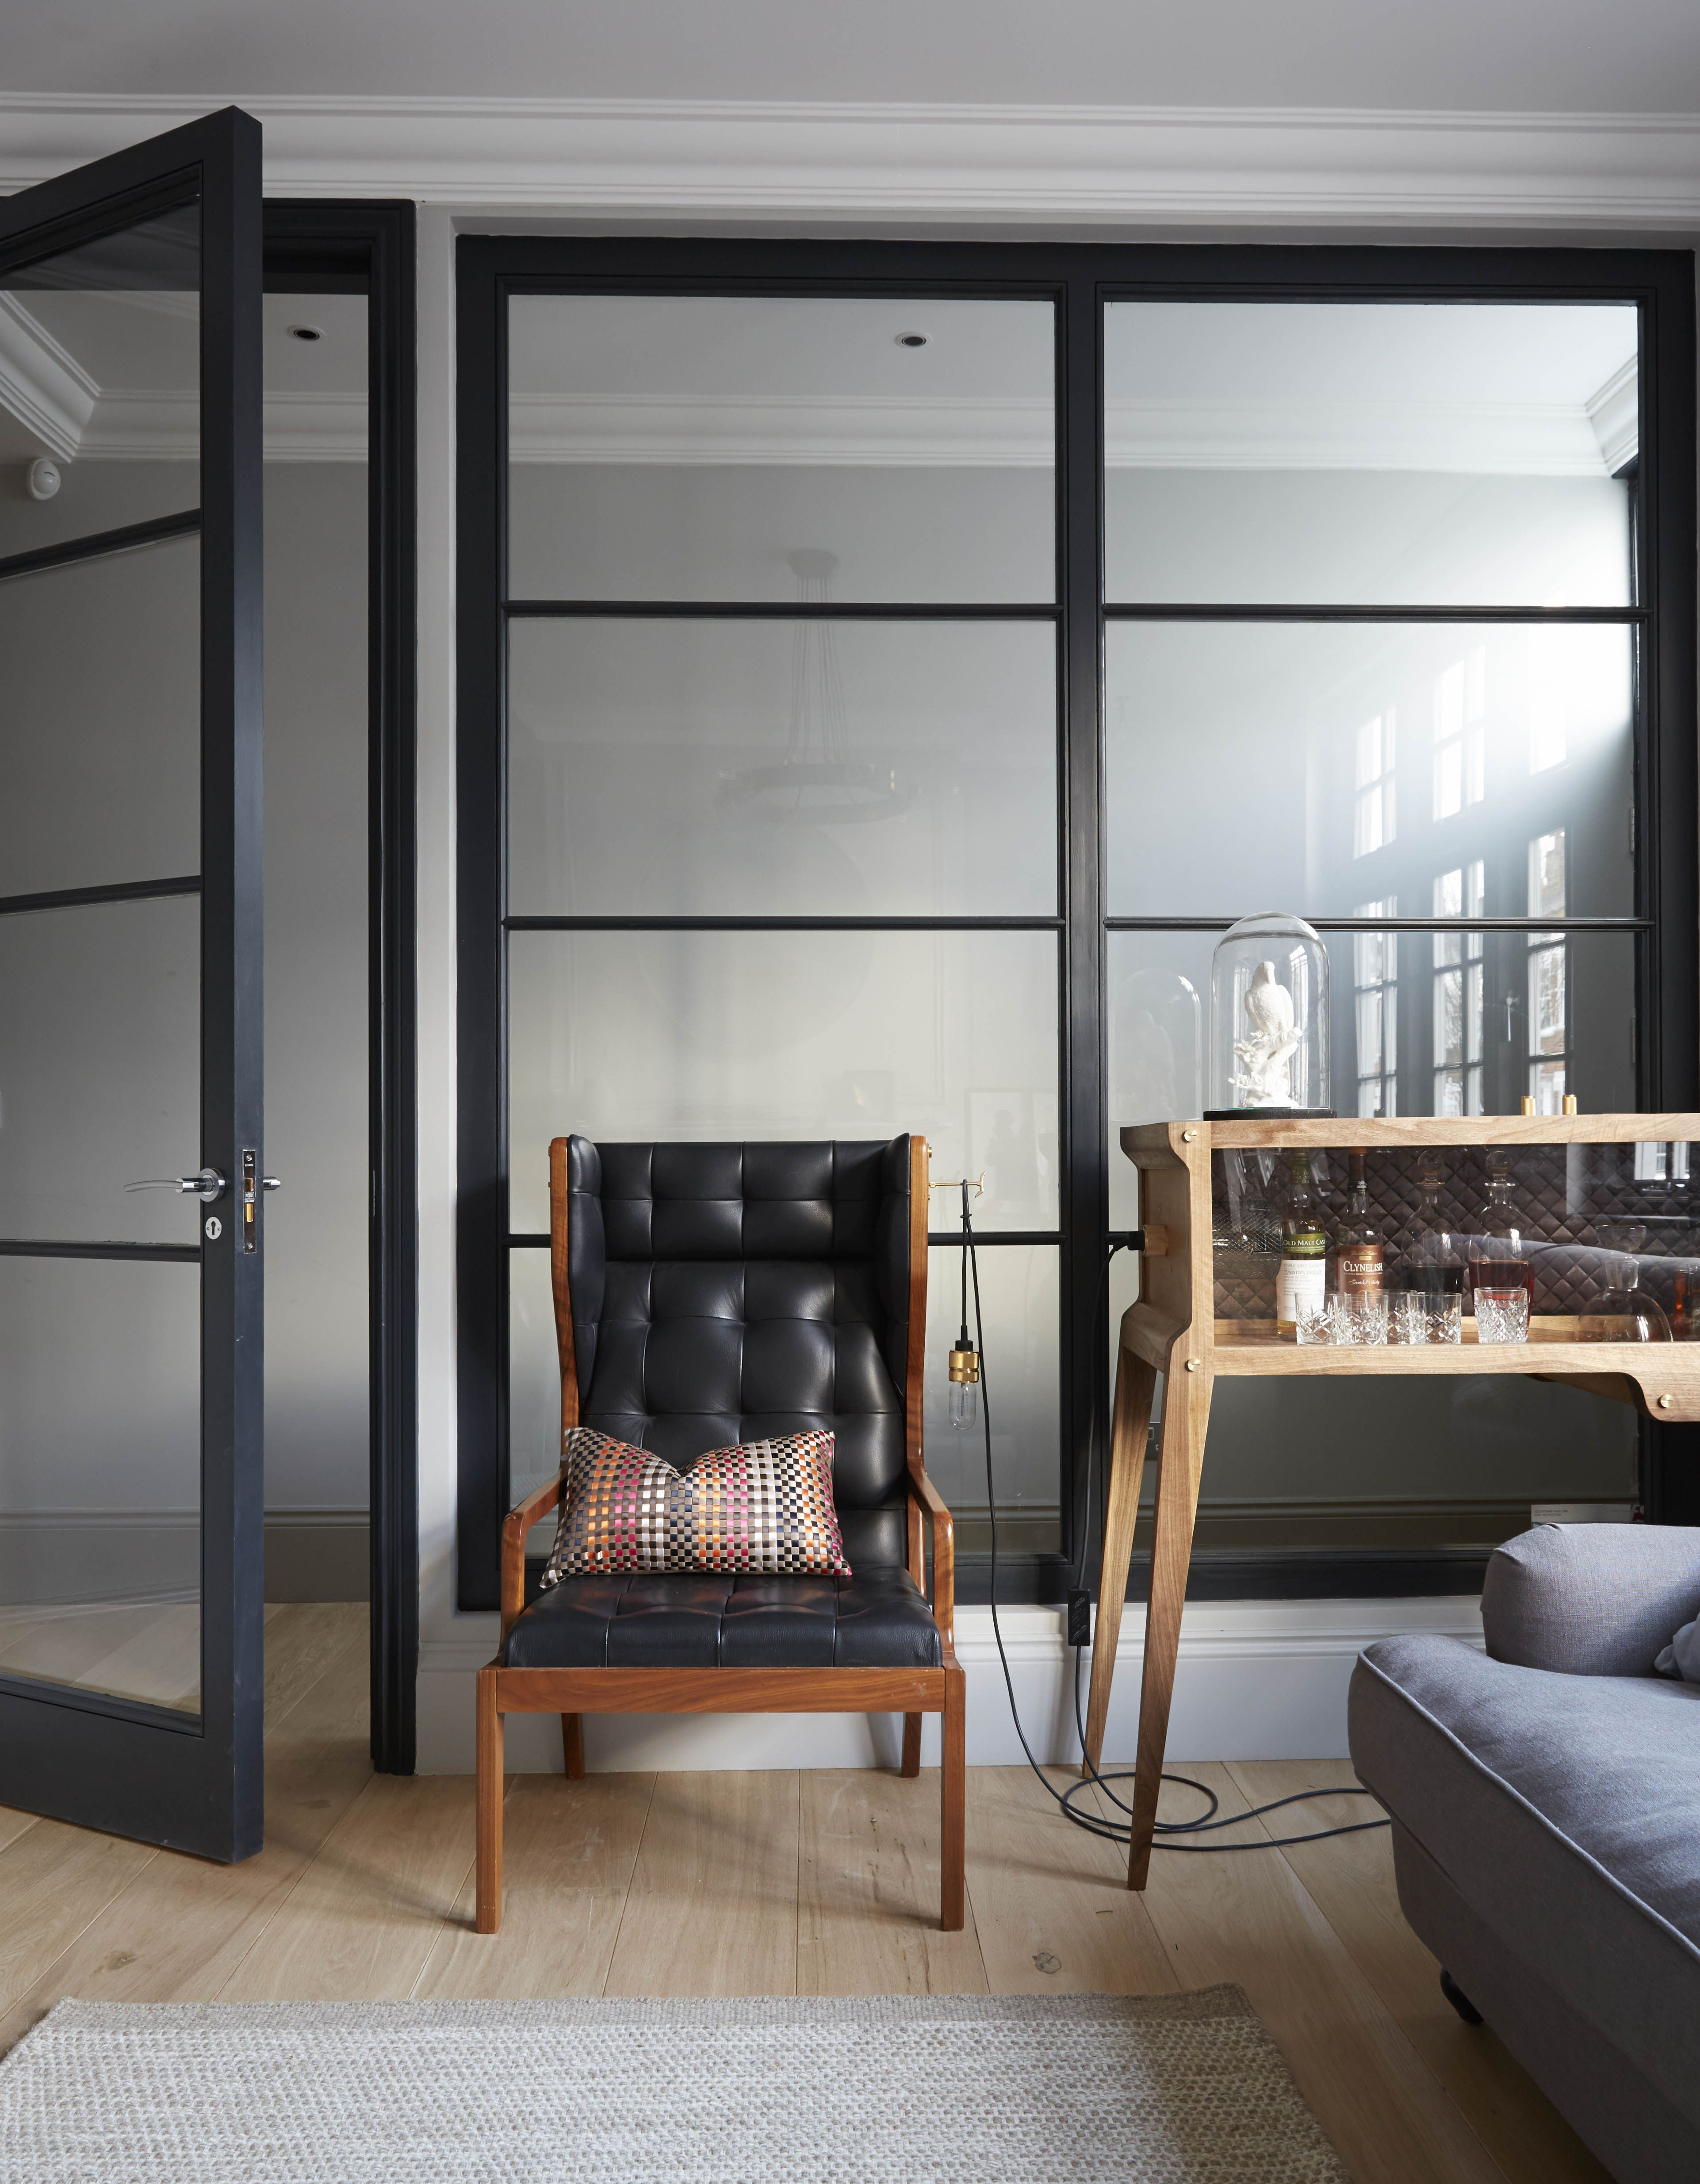 crittall style interior timber windows by minale mann. Black Bedroom Furniture Sets. Home Design Ideas